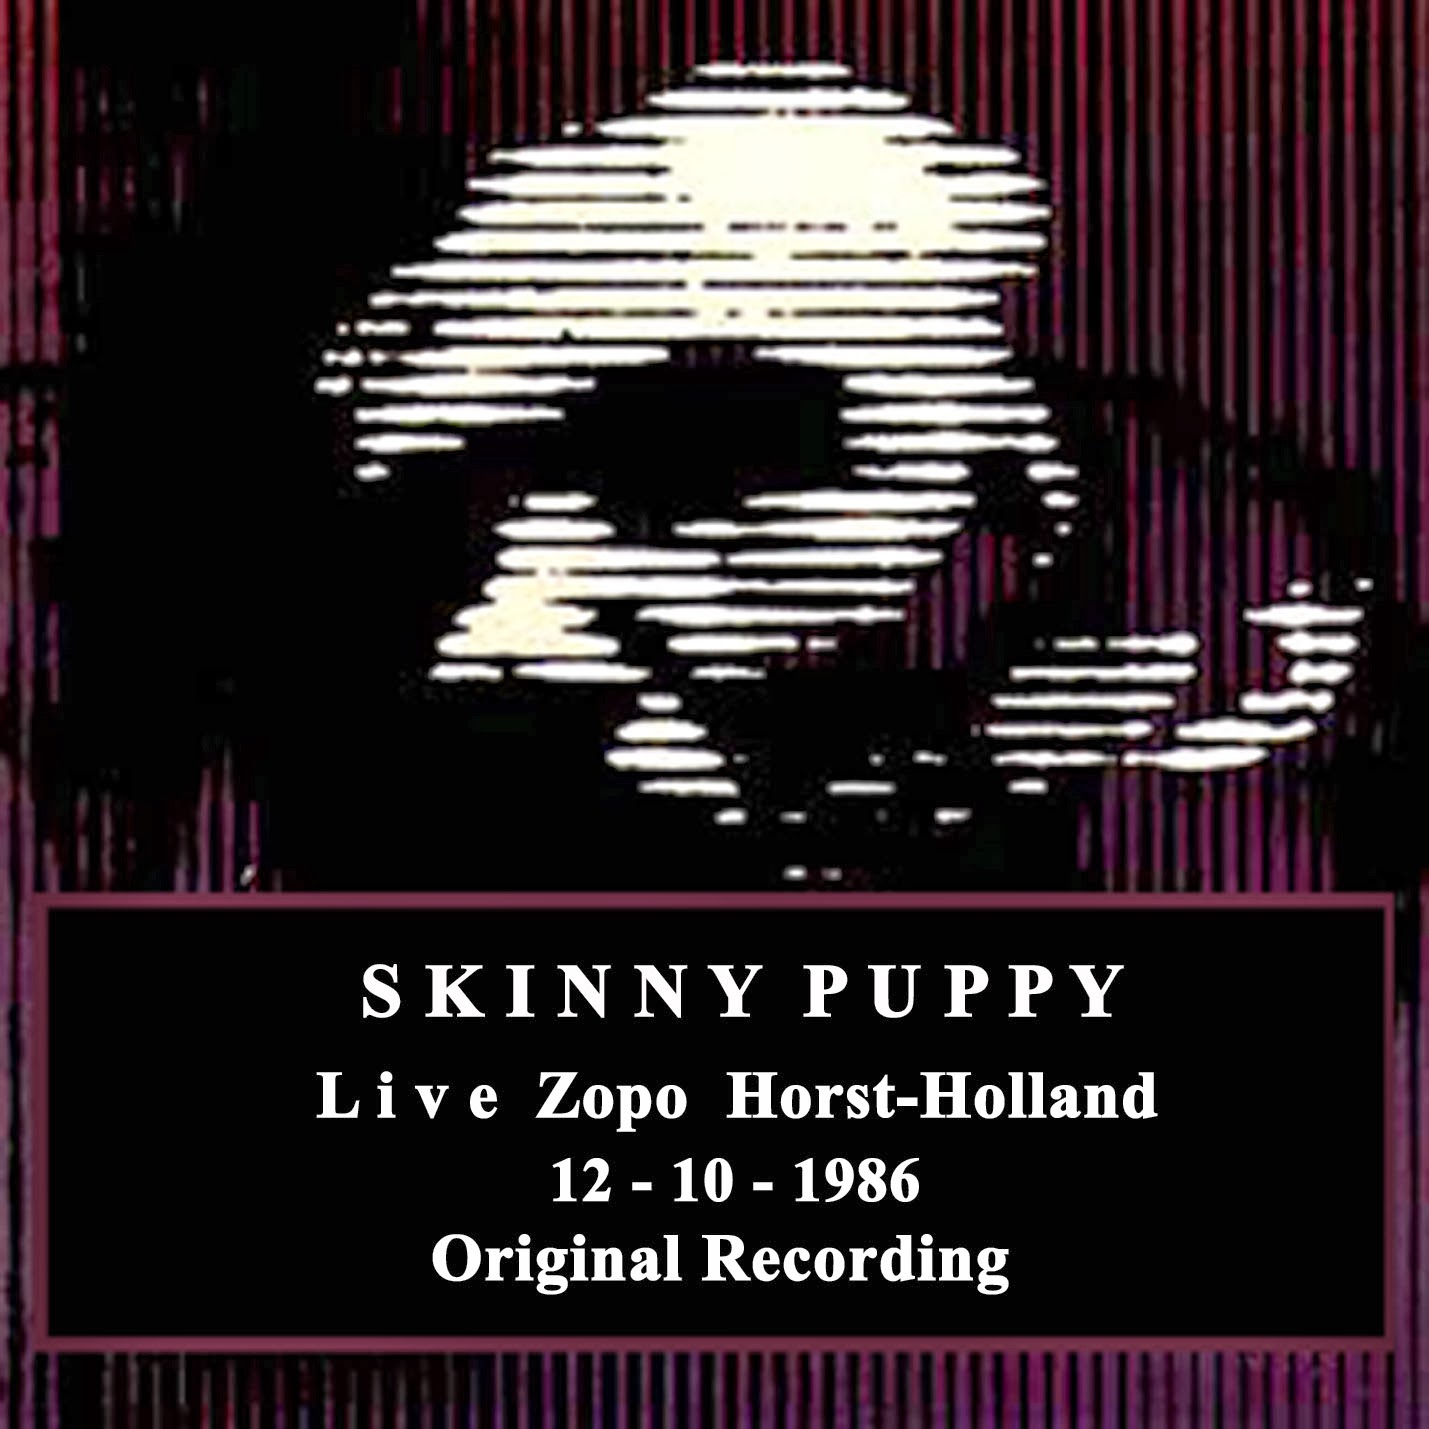 skinny puppy flac discography